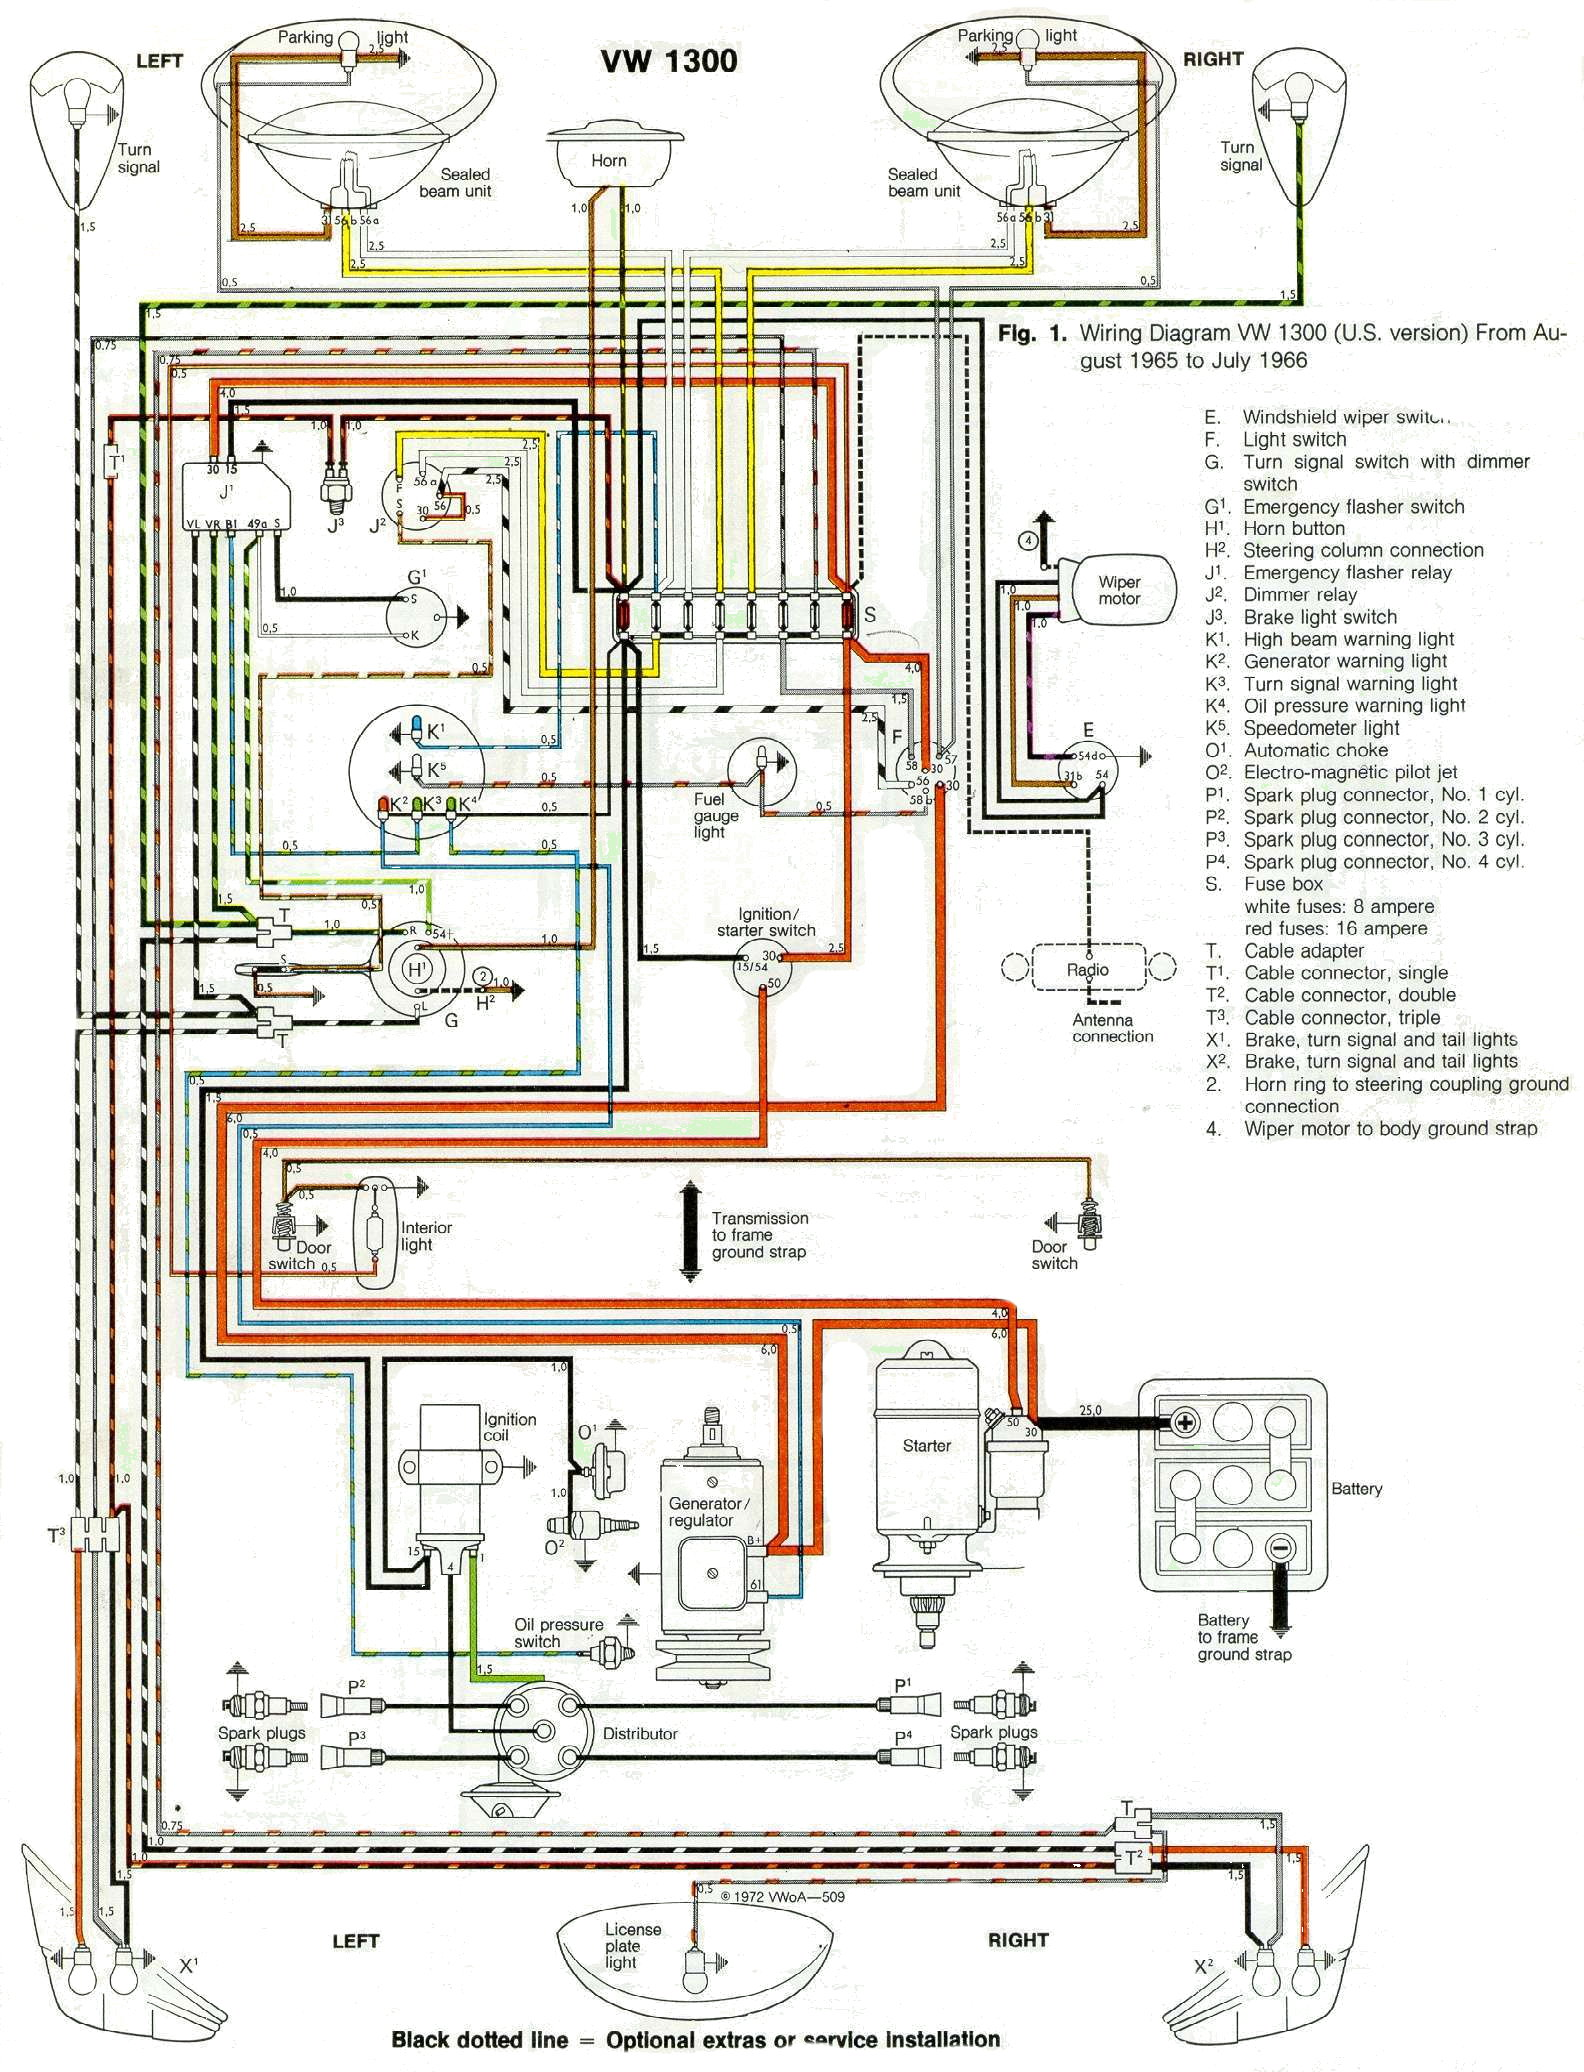 1966 Wiring 1966 wiring diagram vw beetle wiring diagram at pacquiaovsvargaslive.co